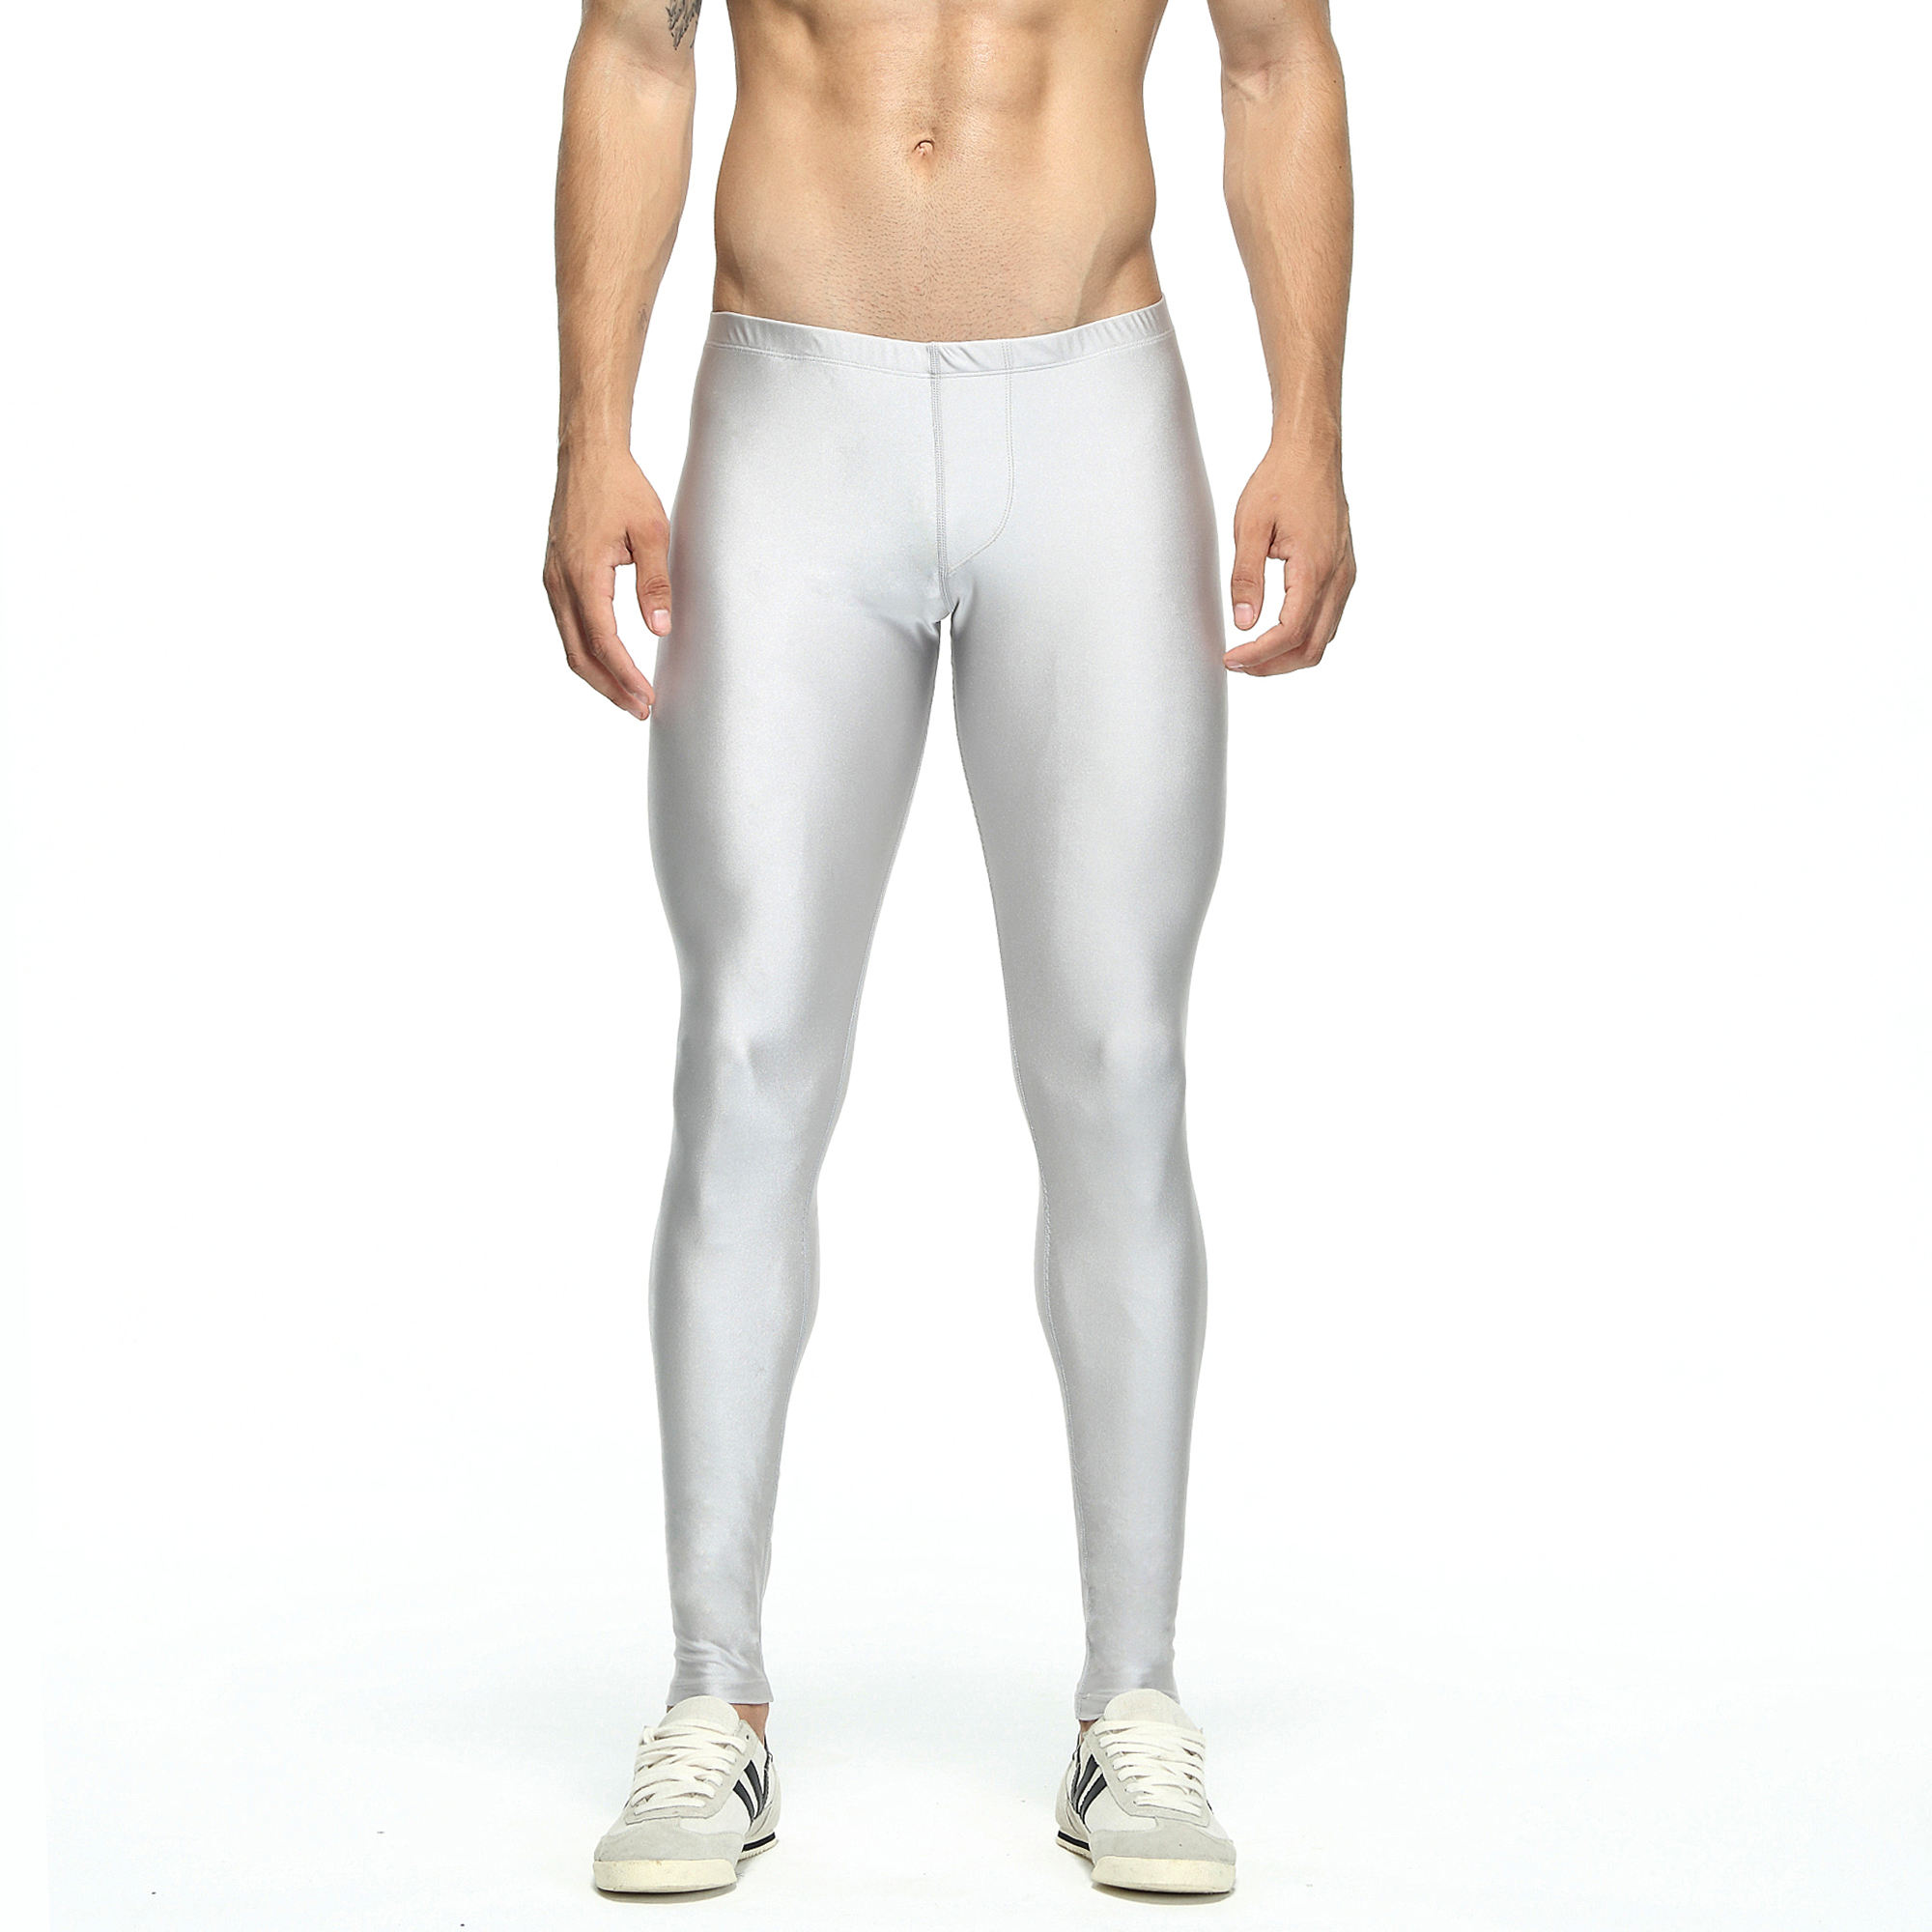 Popular New Producing Training Suit Men's Elastic Tight Trousers Sports Running Leggings Solid Color Yoga Pants